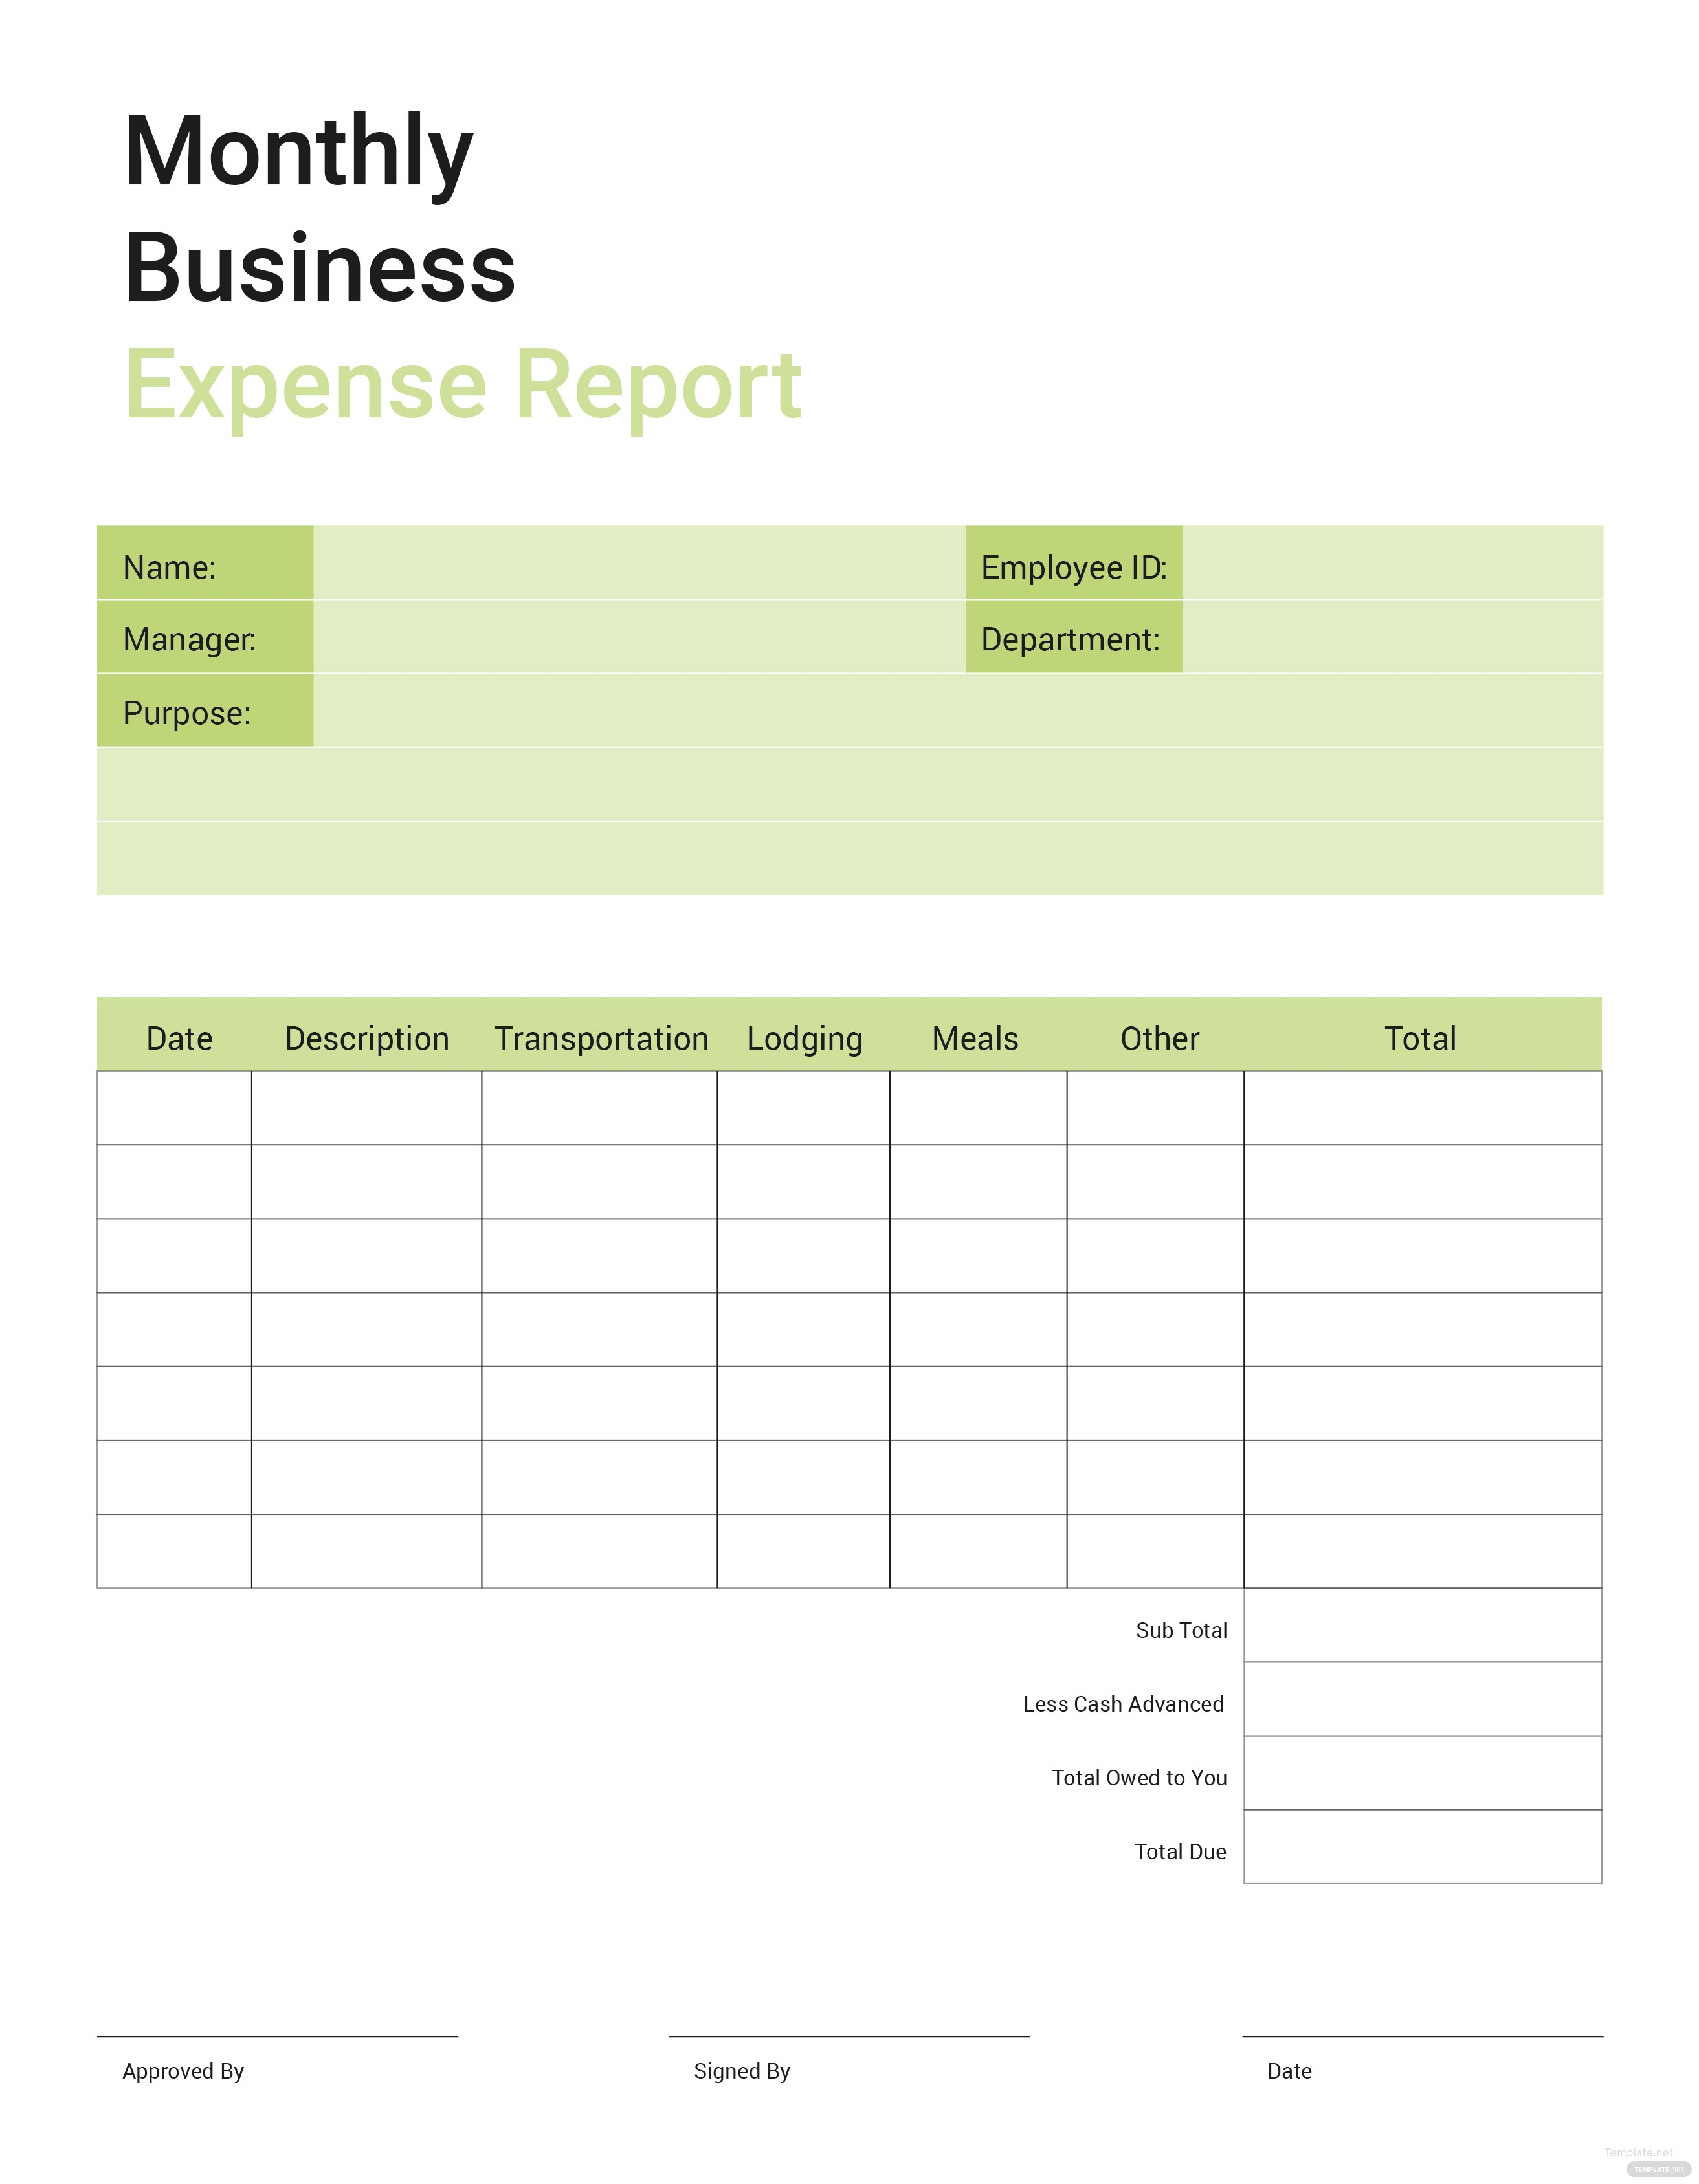 Free business expense report template in microsoft word microsoft business expense report template accmission Choice Image